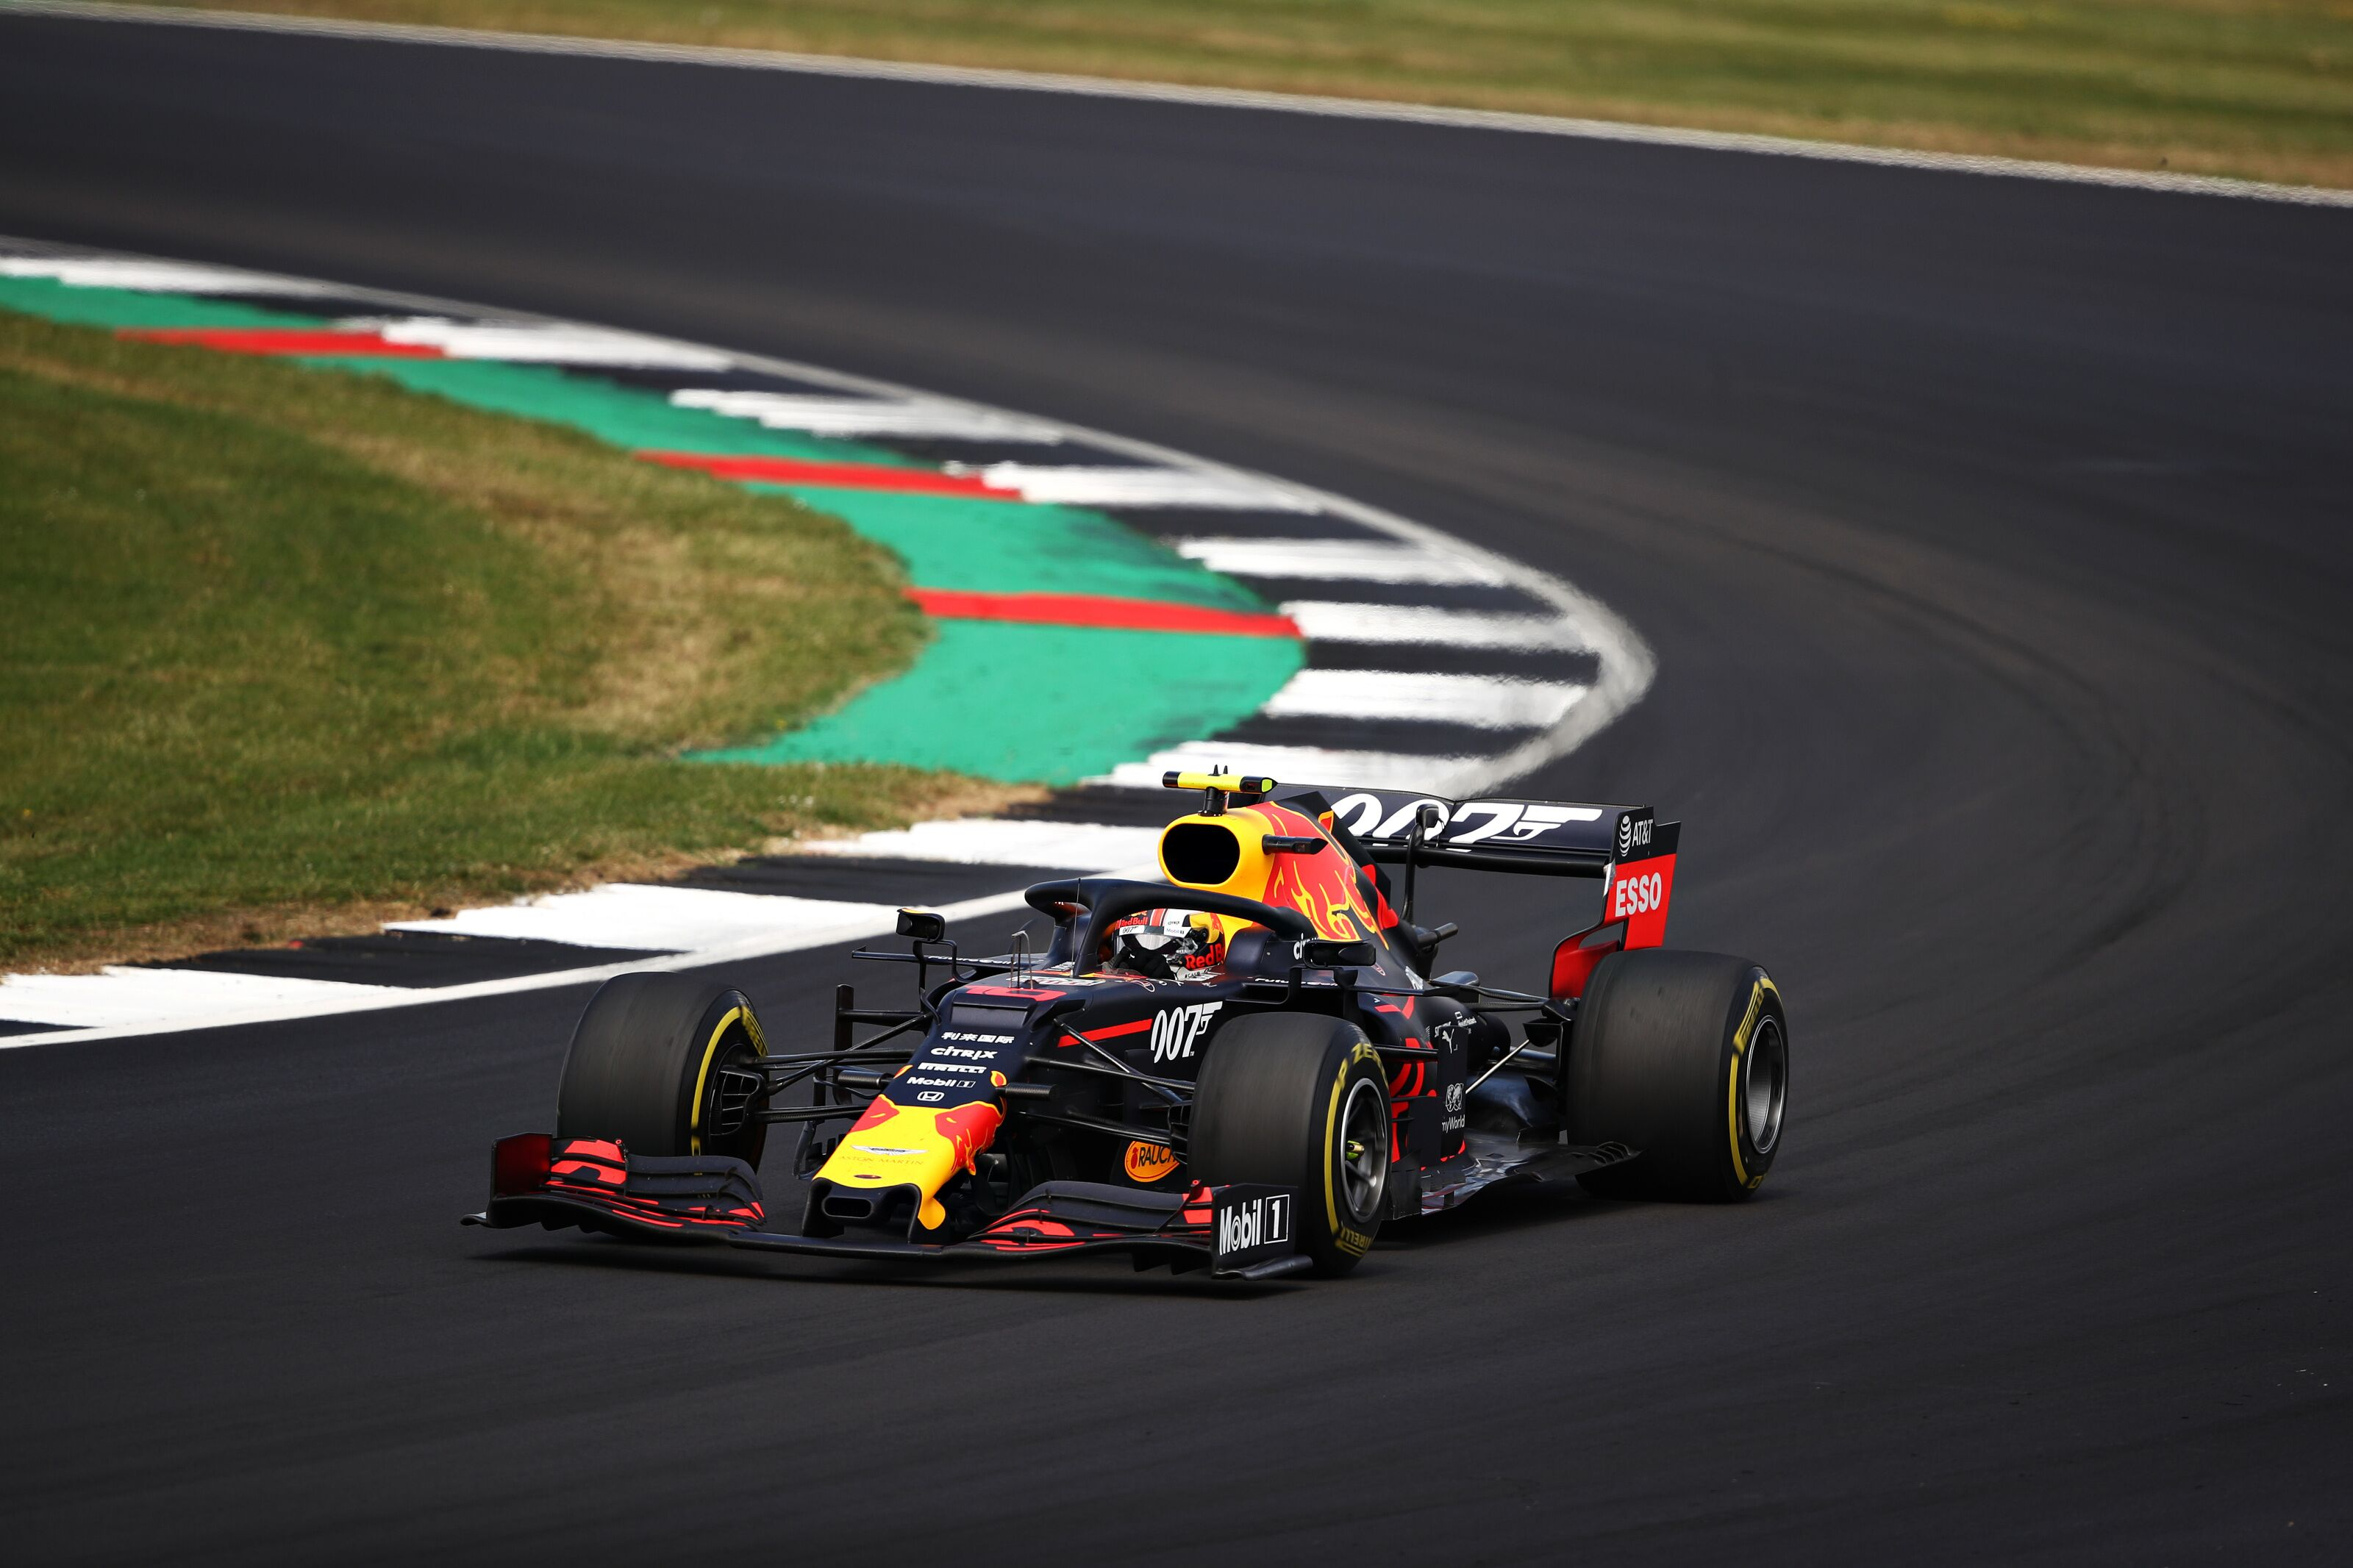 Formula 1: Pierre Gasly finally beats Max Verstappen